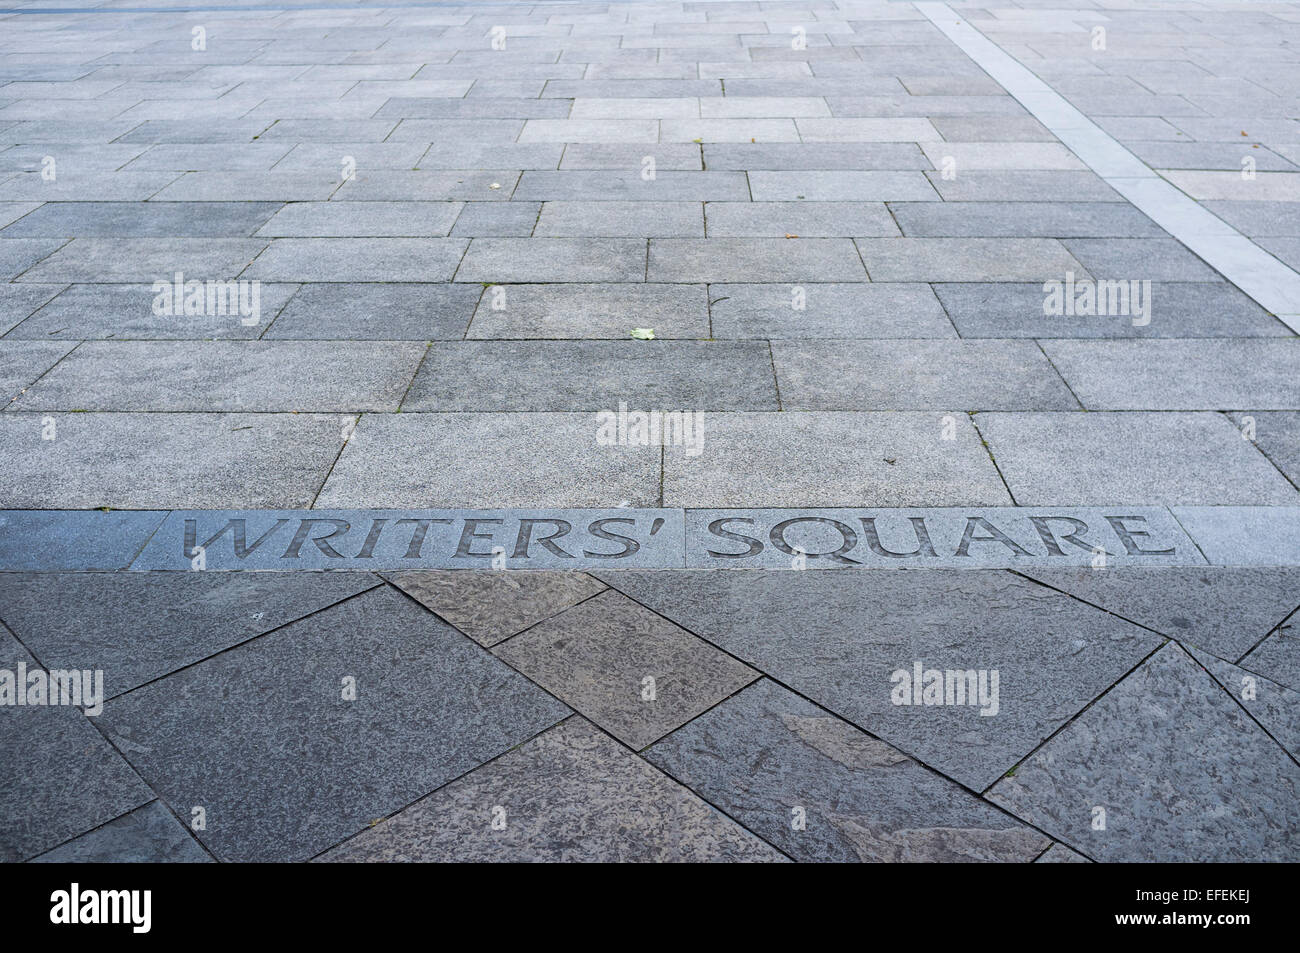 Writers Square, Cathedral Quarter, Belfast, Northern Ireland - Stock Image